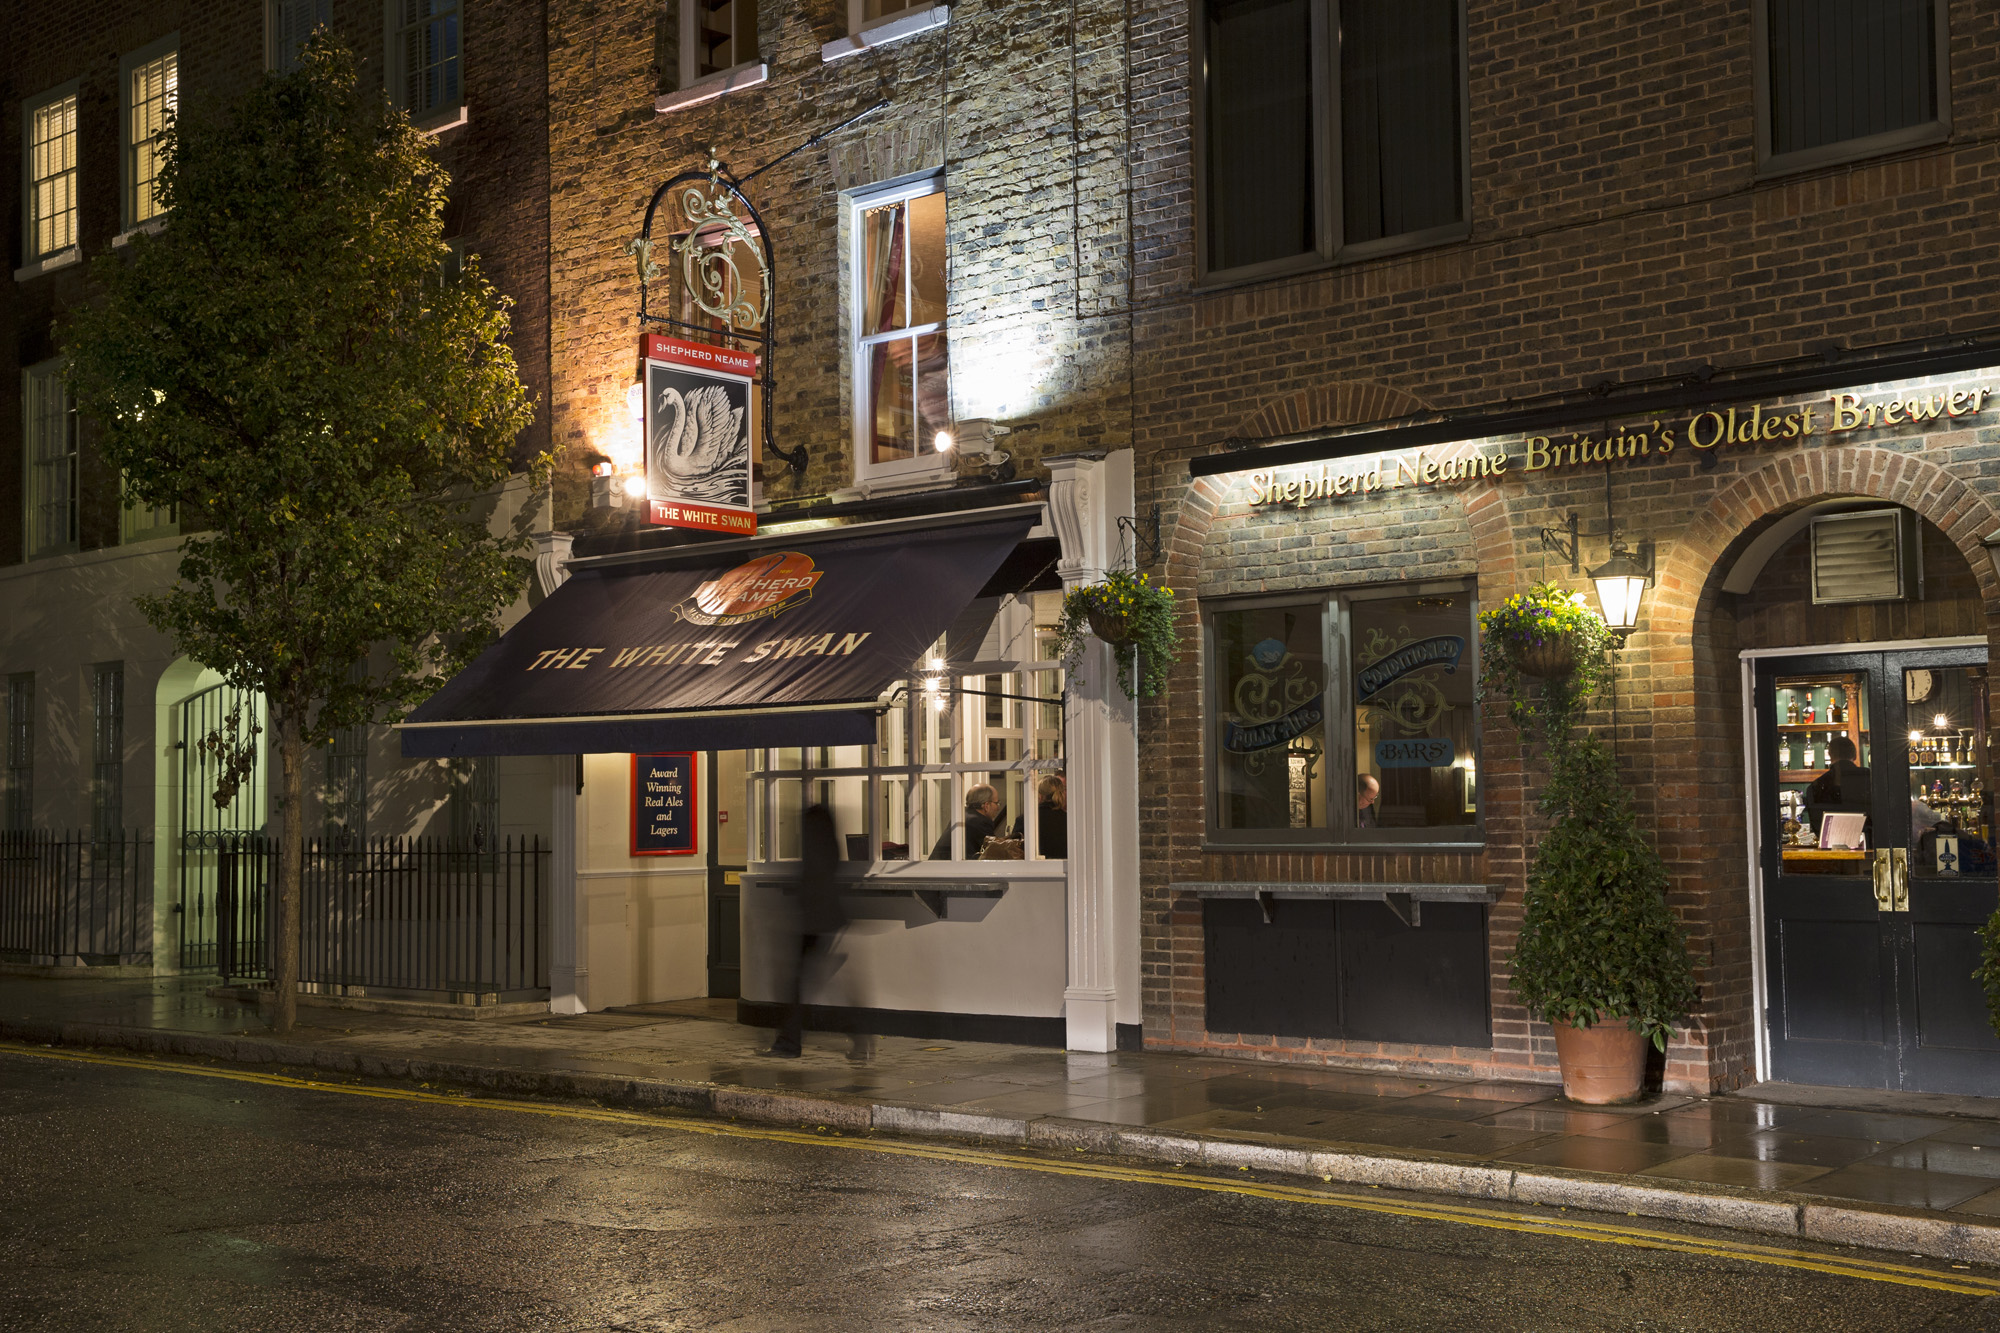 The White Swan Aldgate East